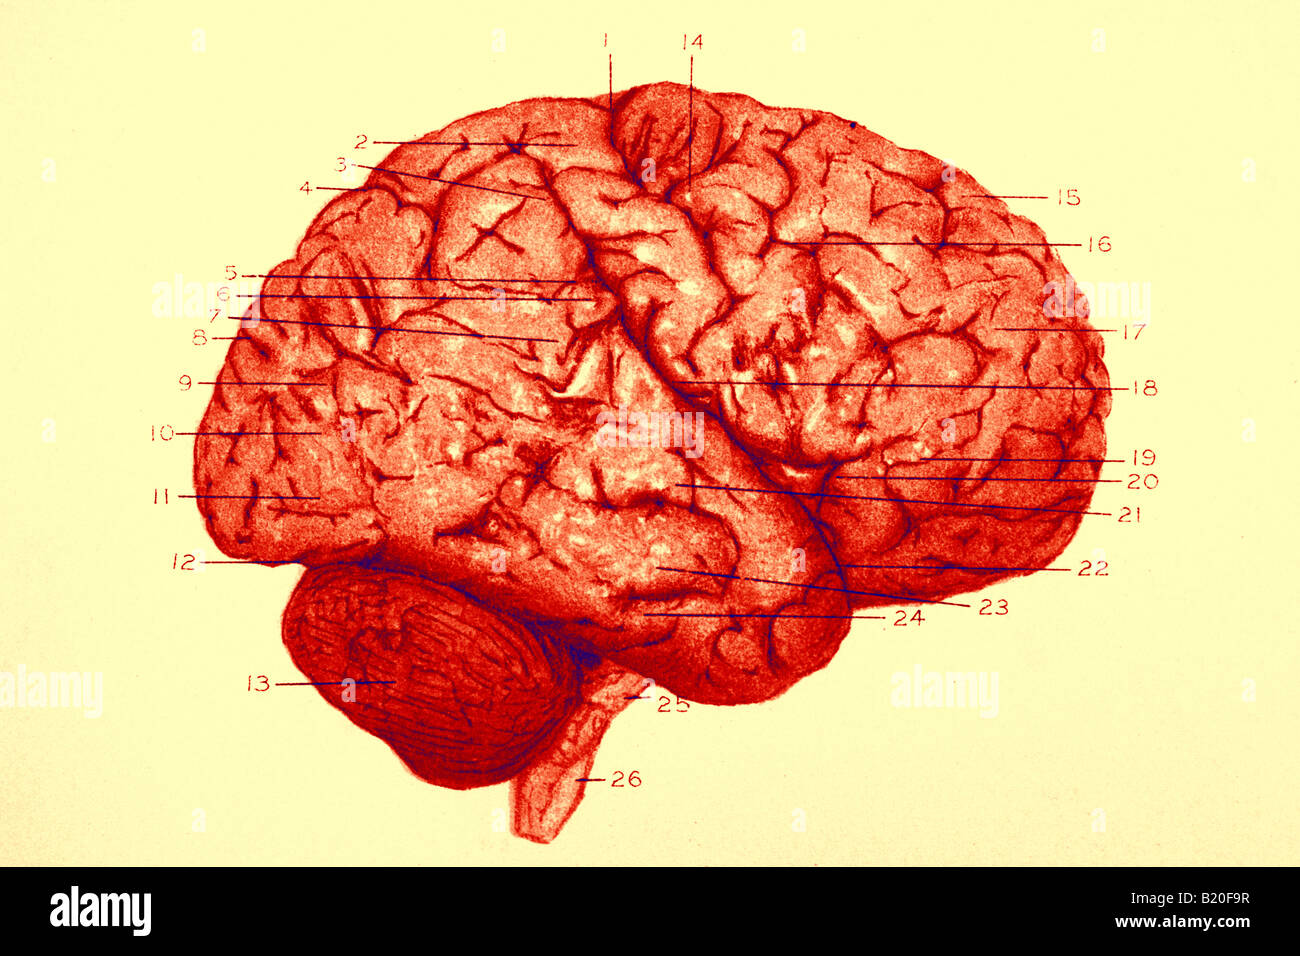 ILLUSTRATION CONVOLUTIONS RIGHT HEMISPHERE OF BRAIN Stock Photo